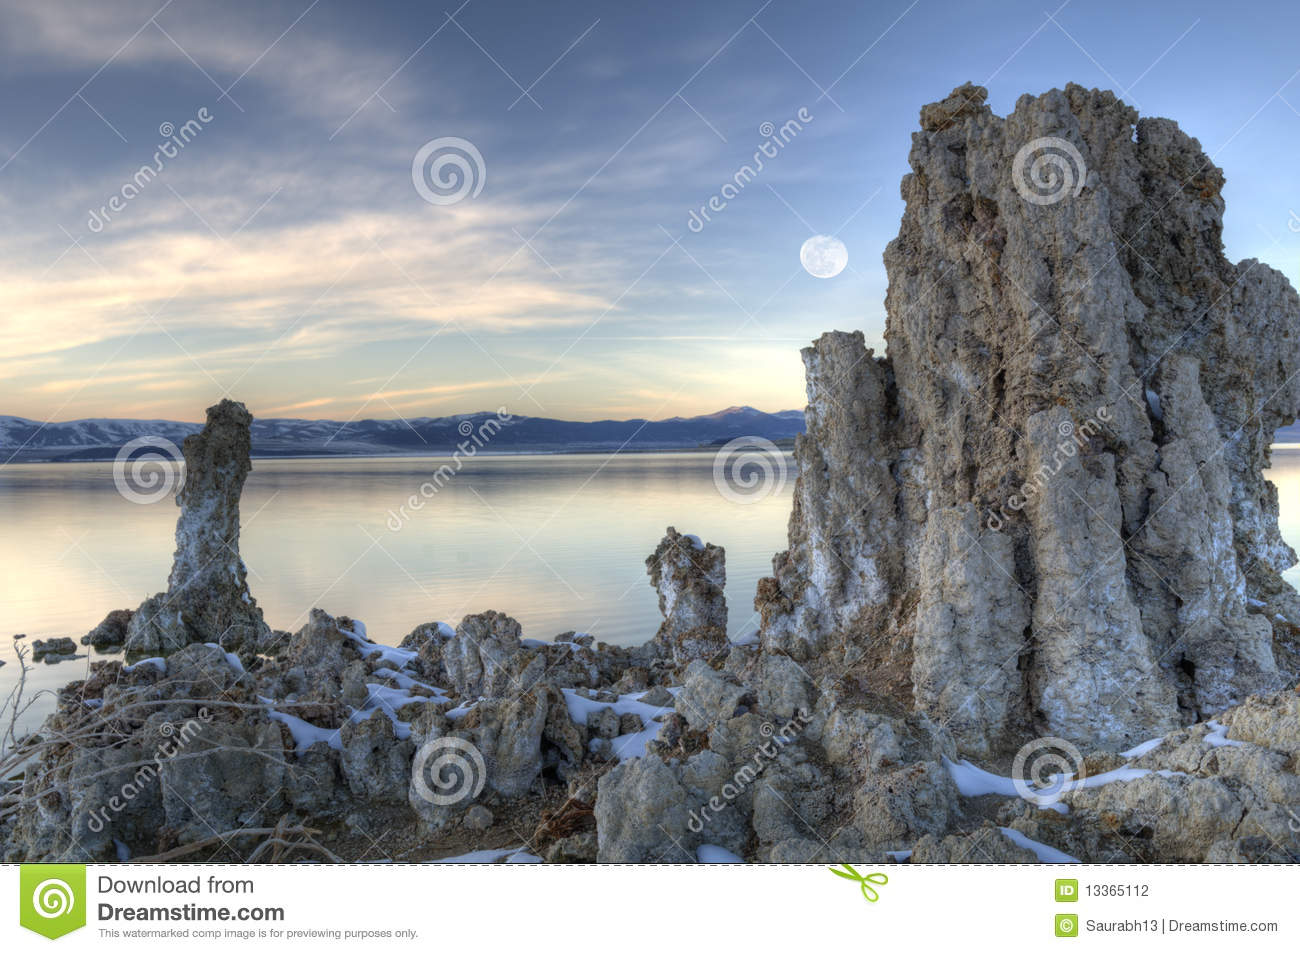 Mono Lake and the rising moon